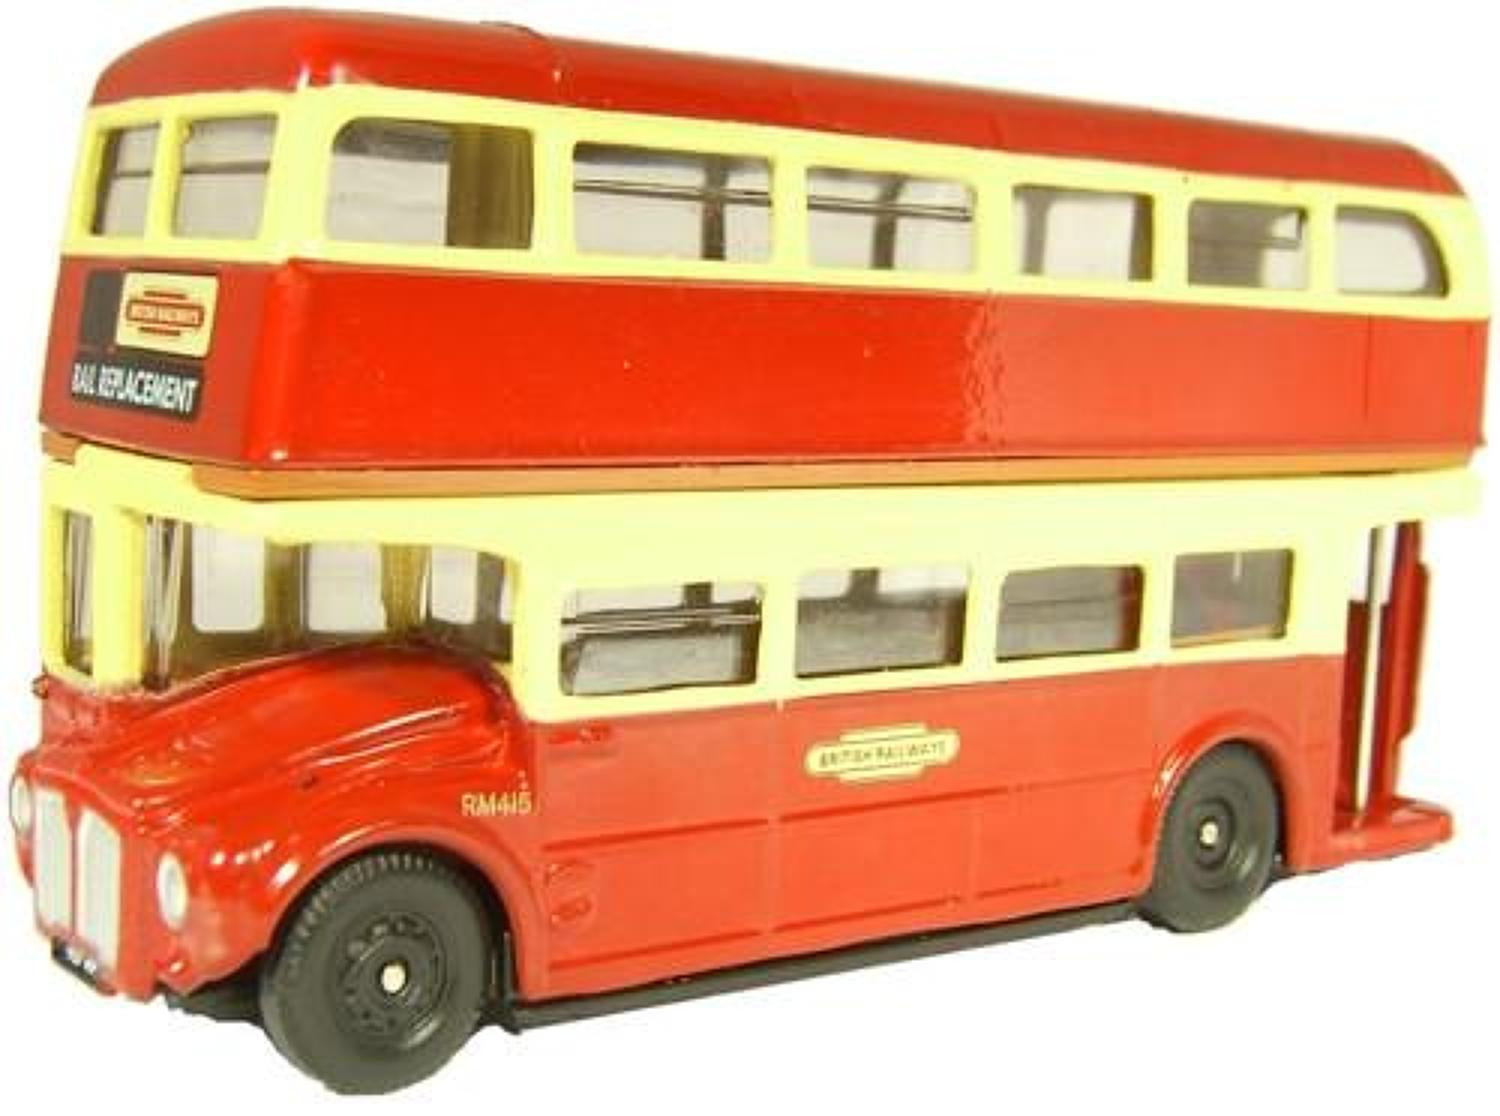 1:76 British Rail Routemaster